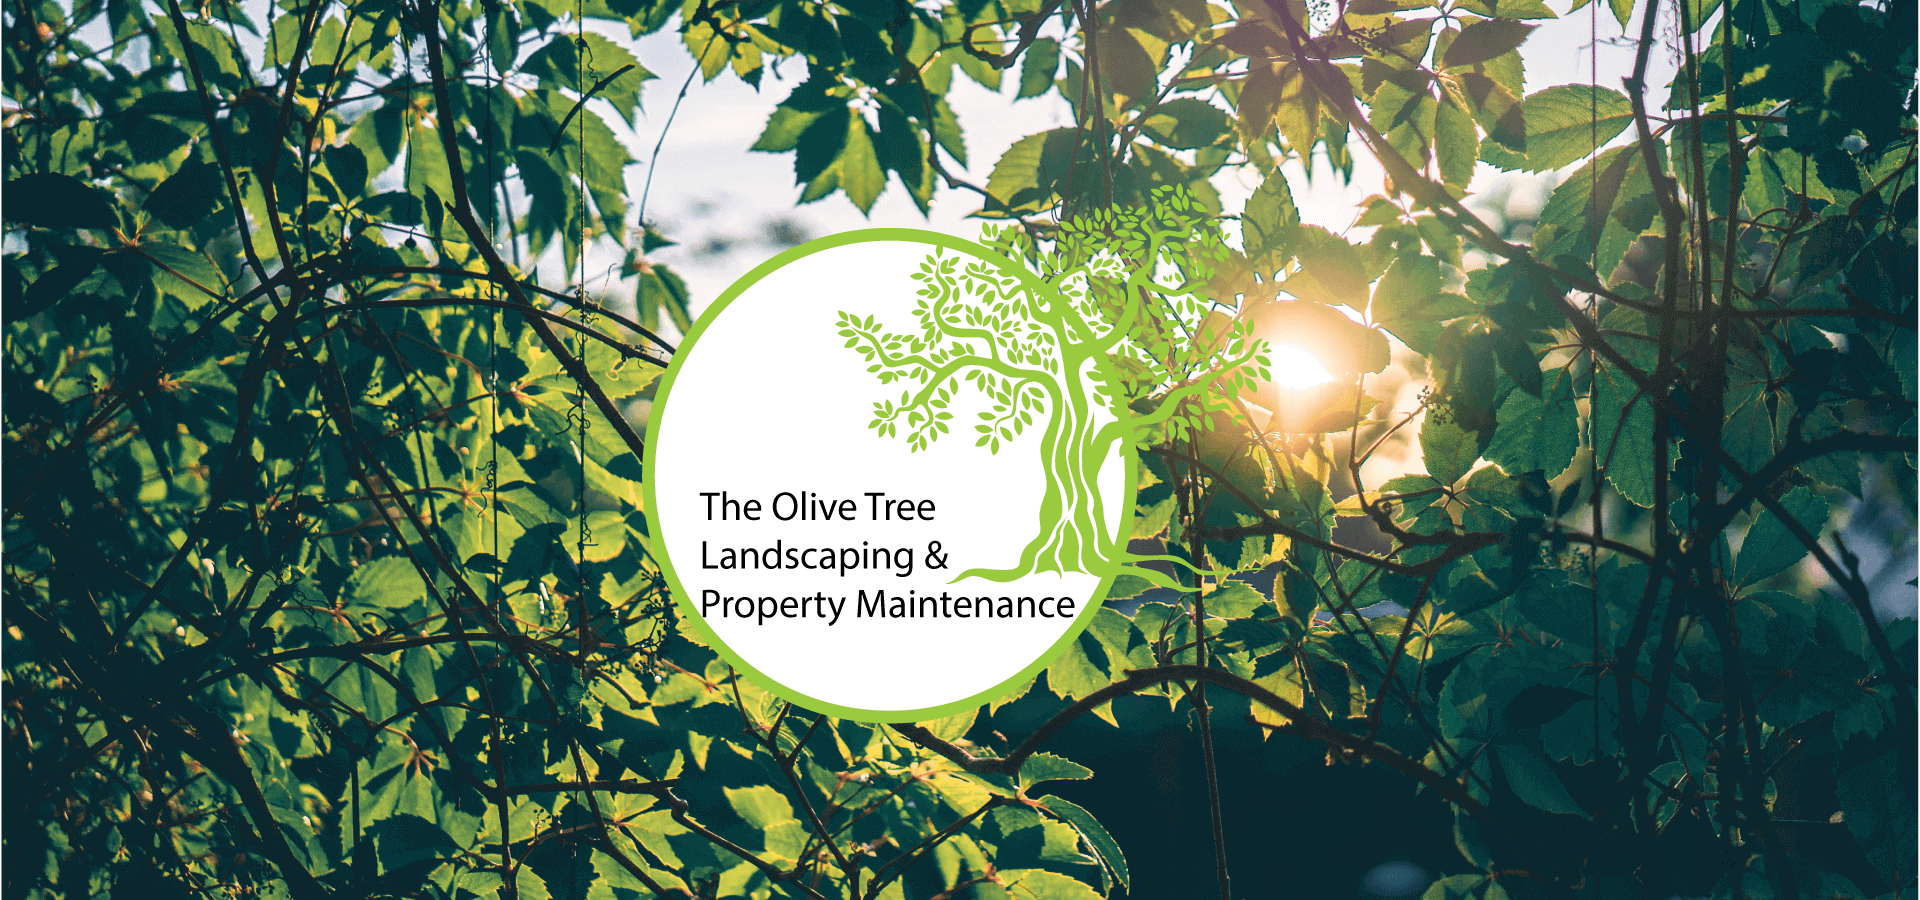 The Olive Tree Landscaping & Property Management